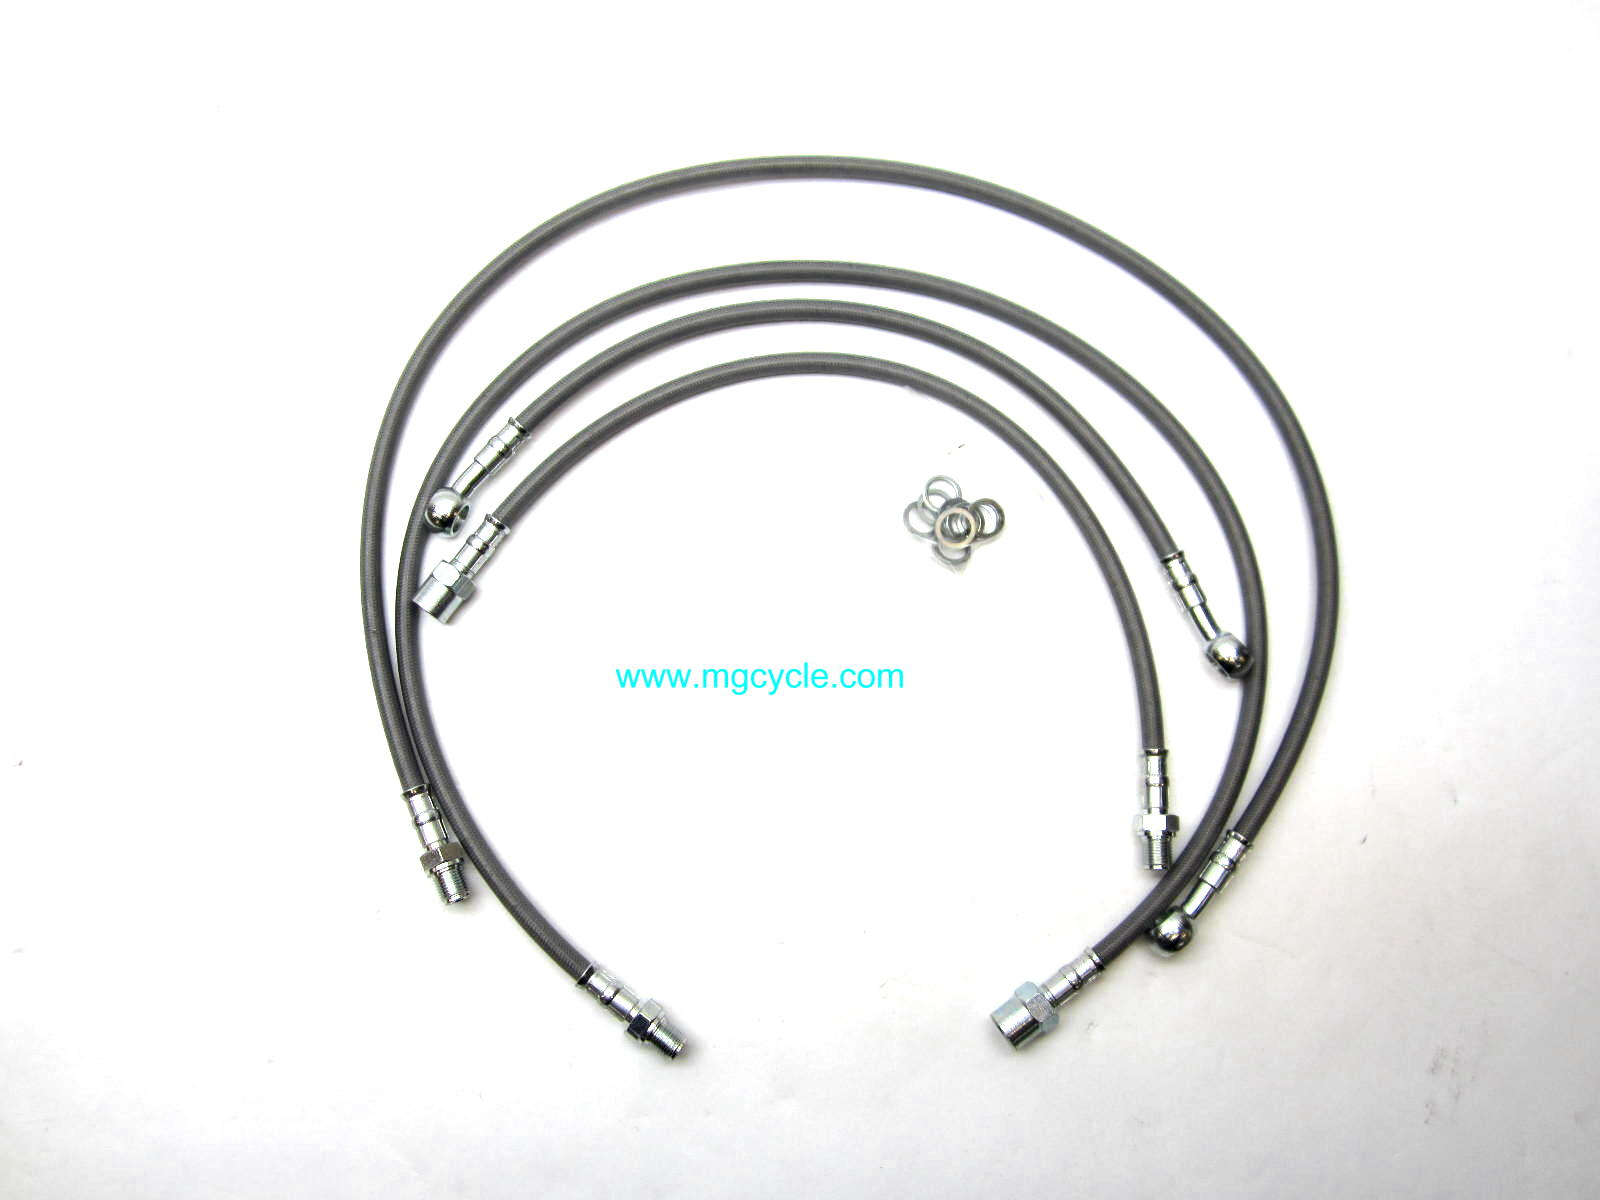 Stainless brake hose kit LeMans II, CX100